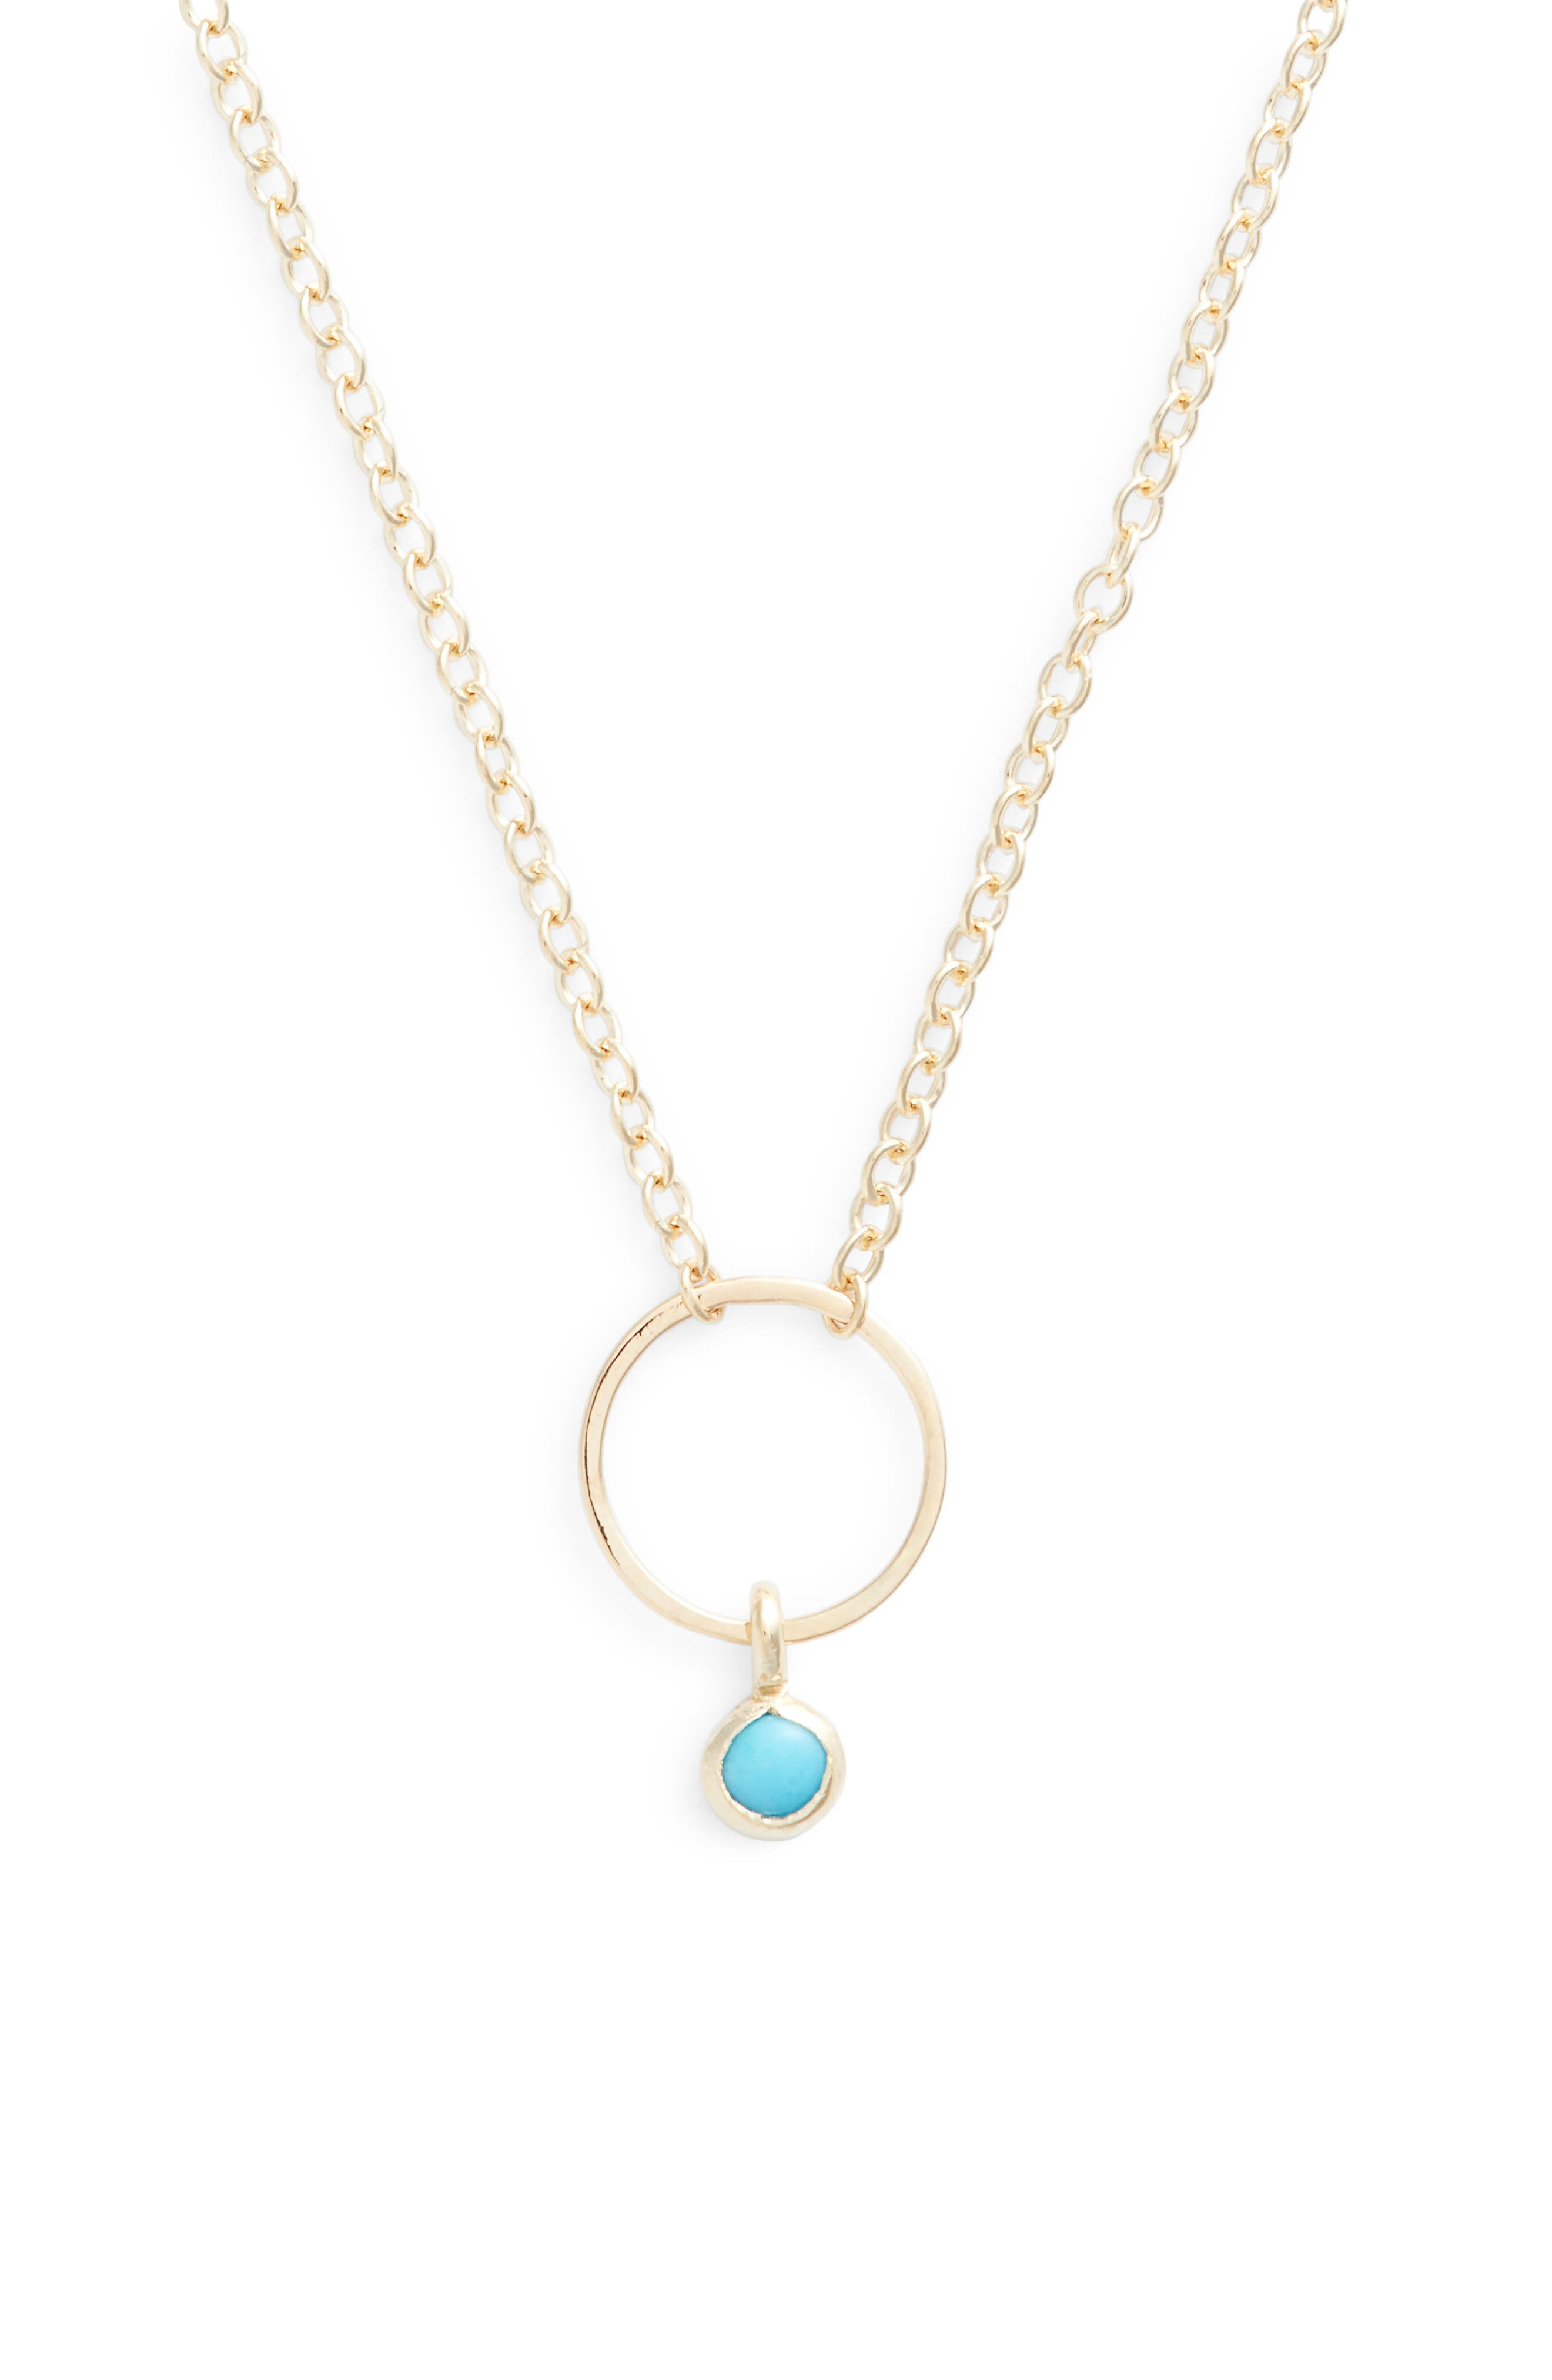 Zoe Chicco Dangling Turquoise Circle Pendant Necklace